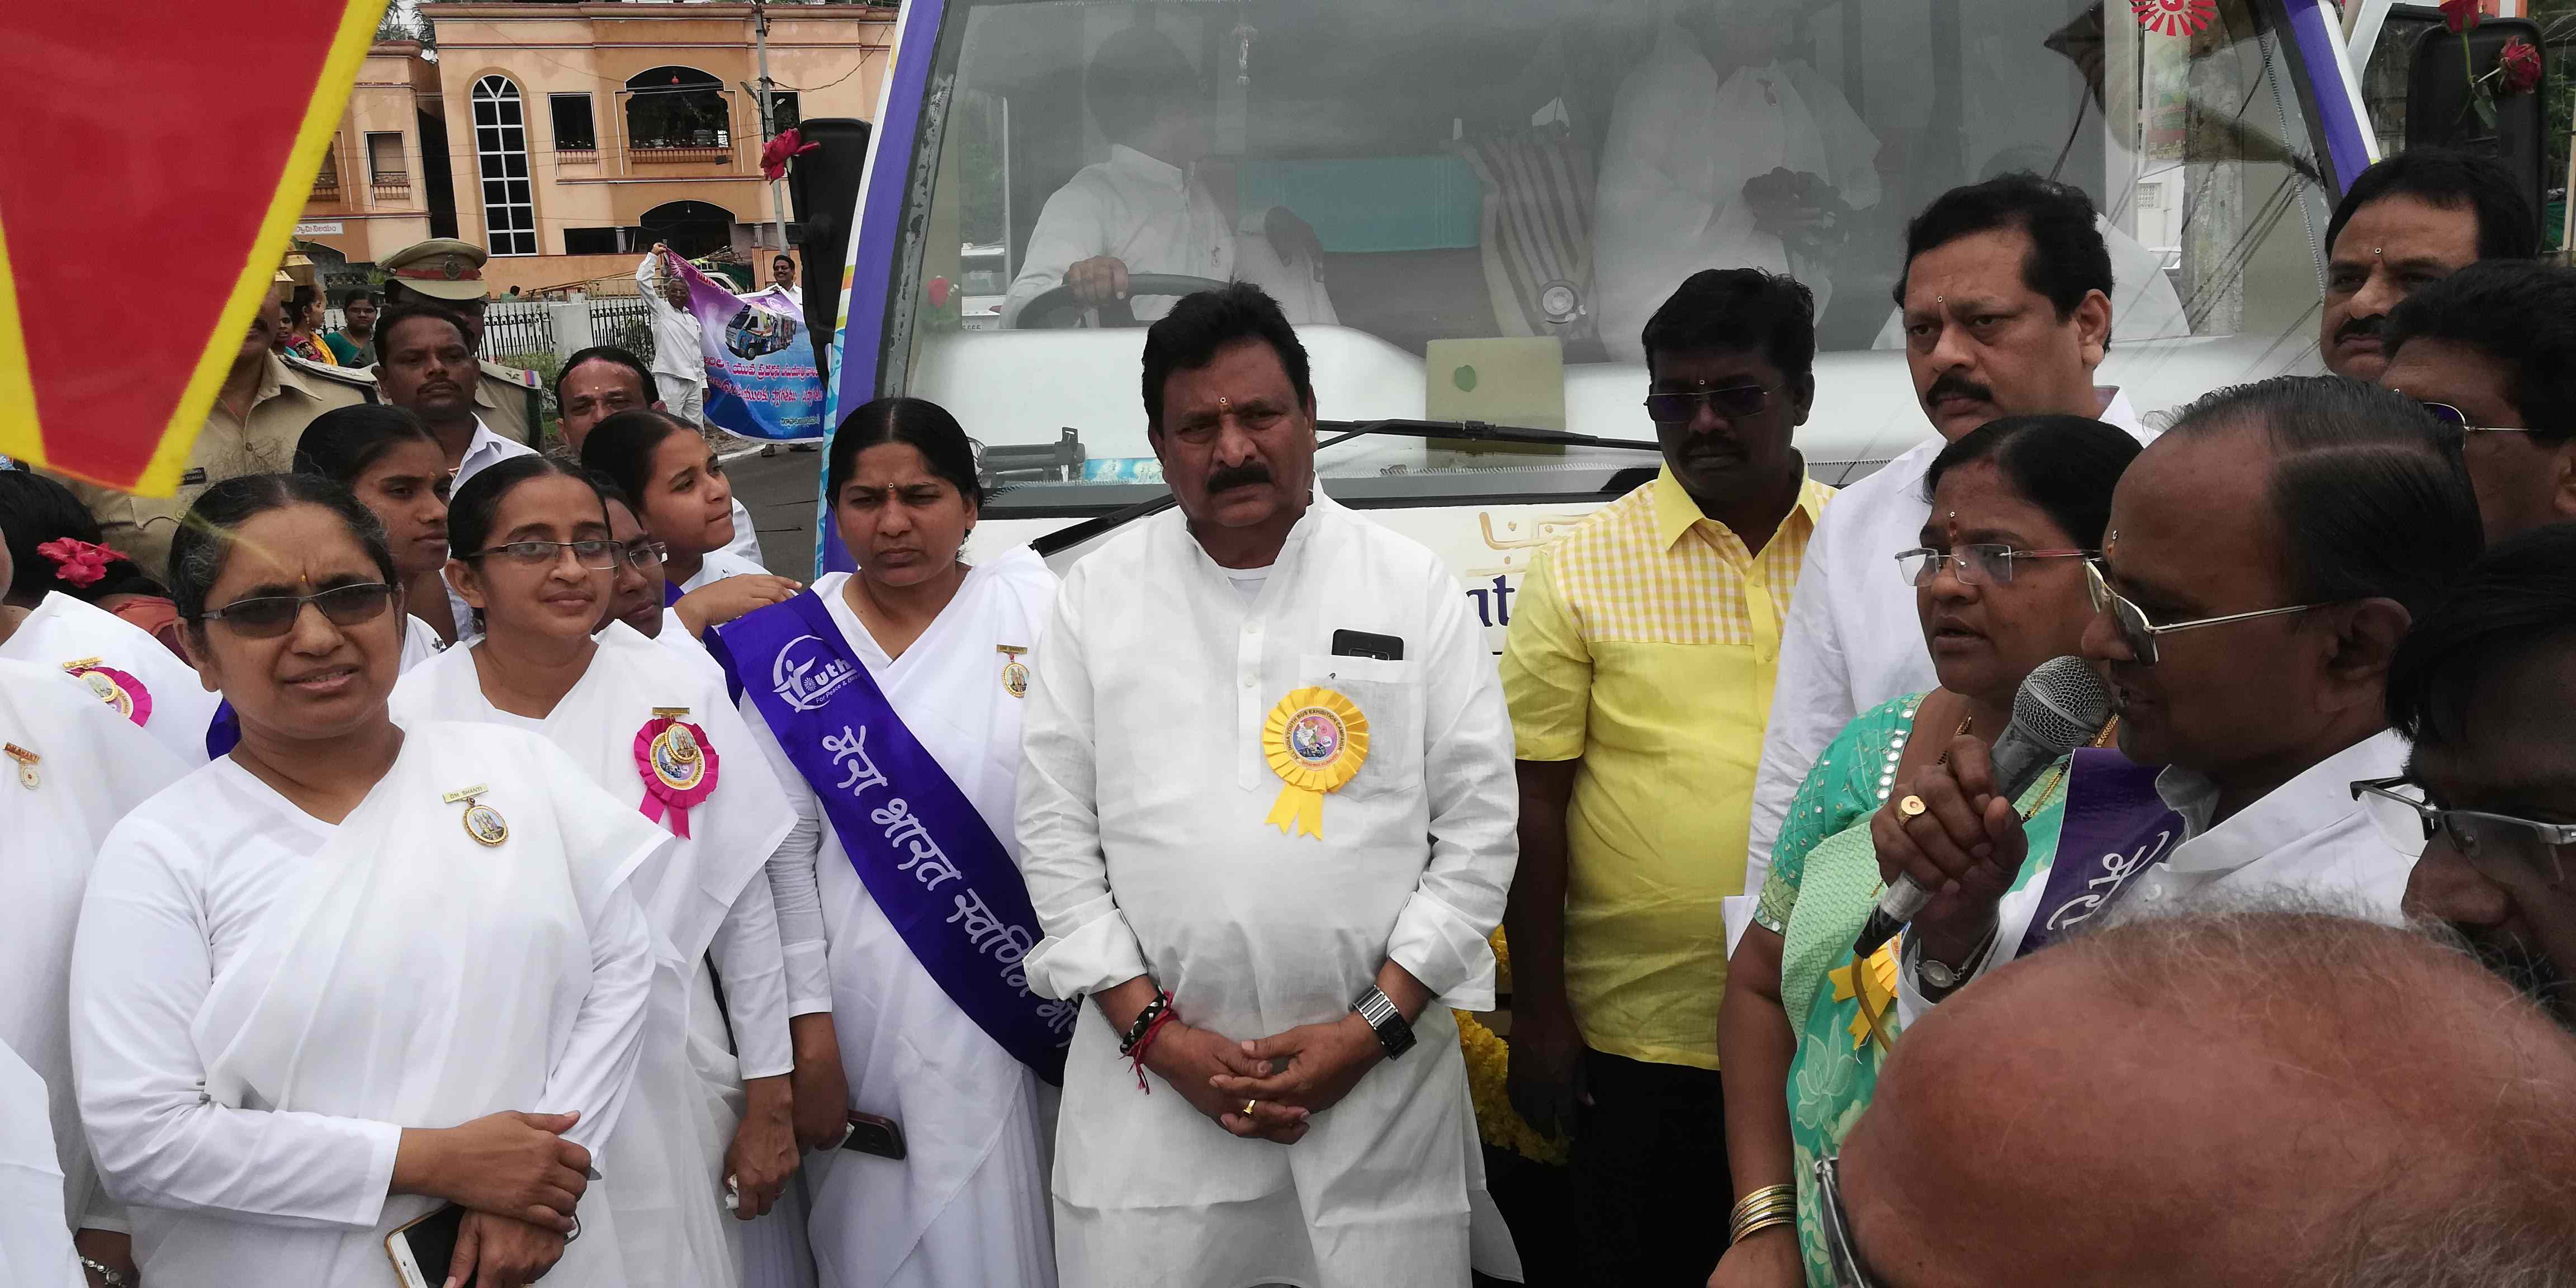 Deputy Chief Minister and Home Minister of Andhra Pradesh welcomes BK Youth Rally